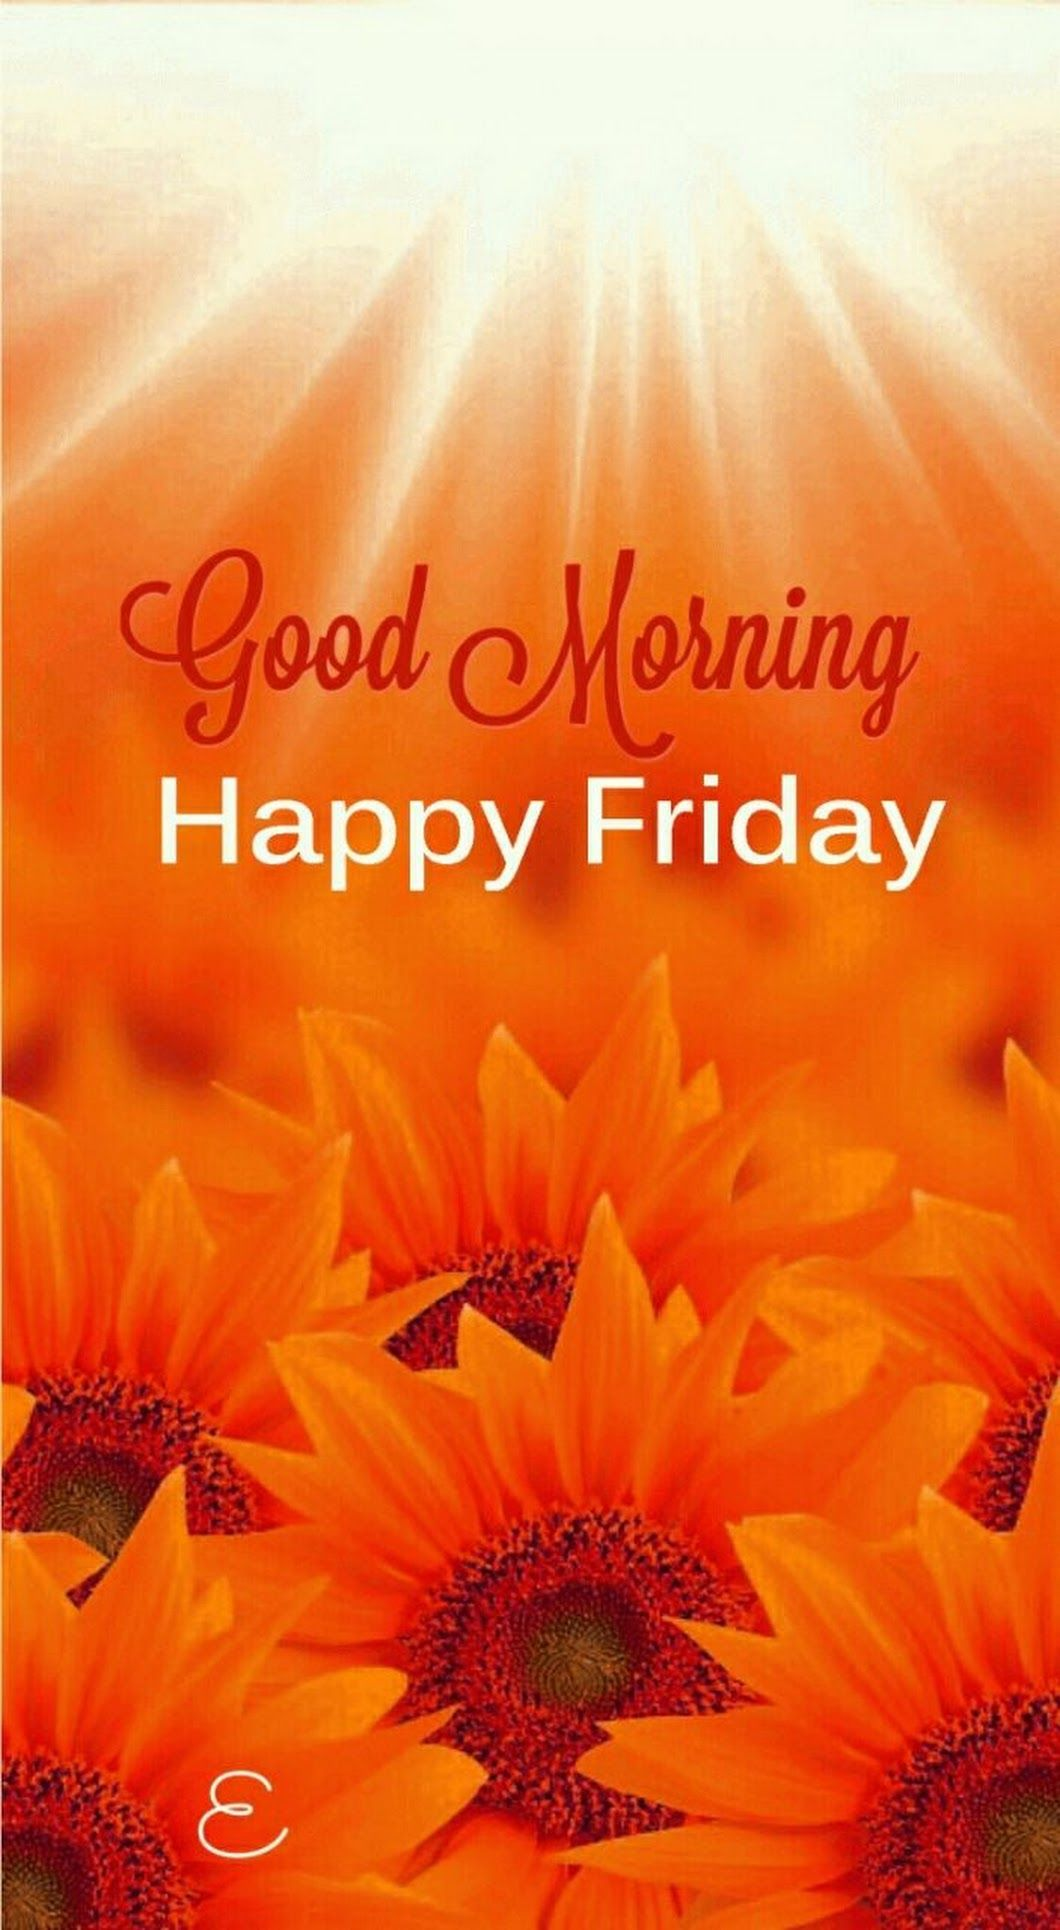 Happy Friday 🌻🌻🌻🌻🌻 (With images) | Good morning happy friday ...